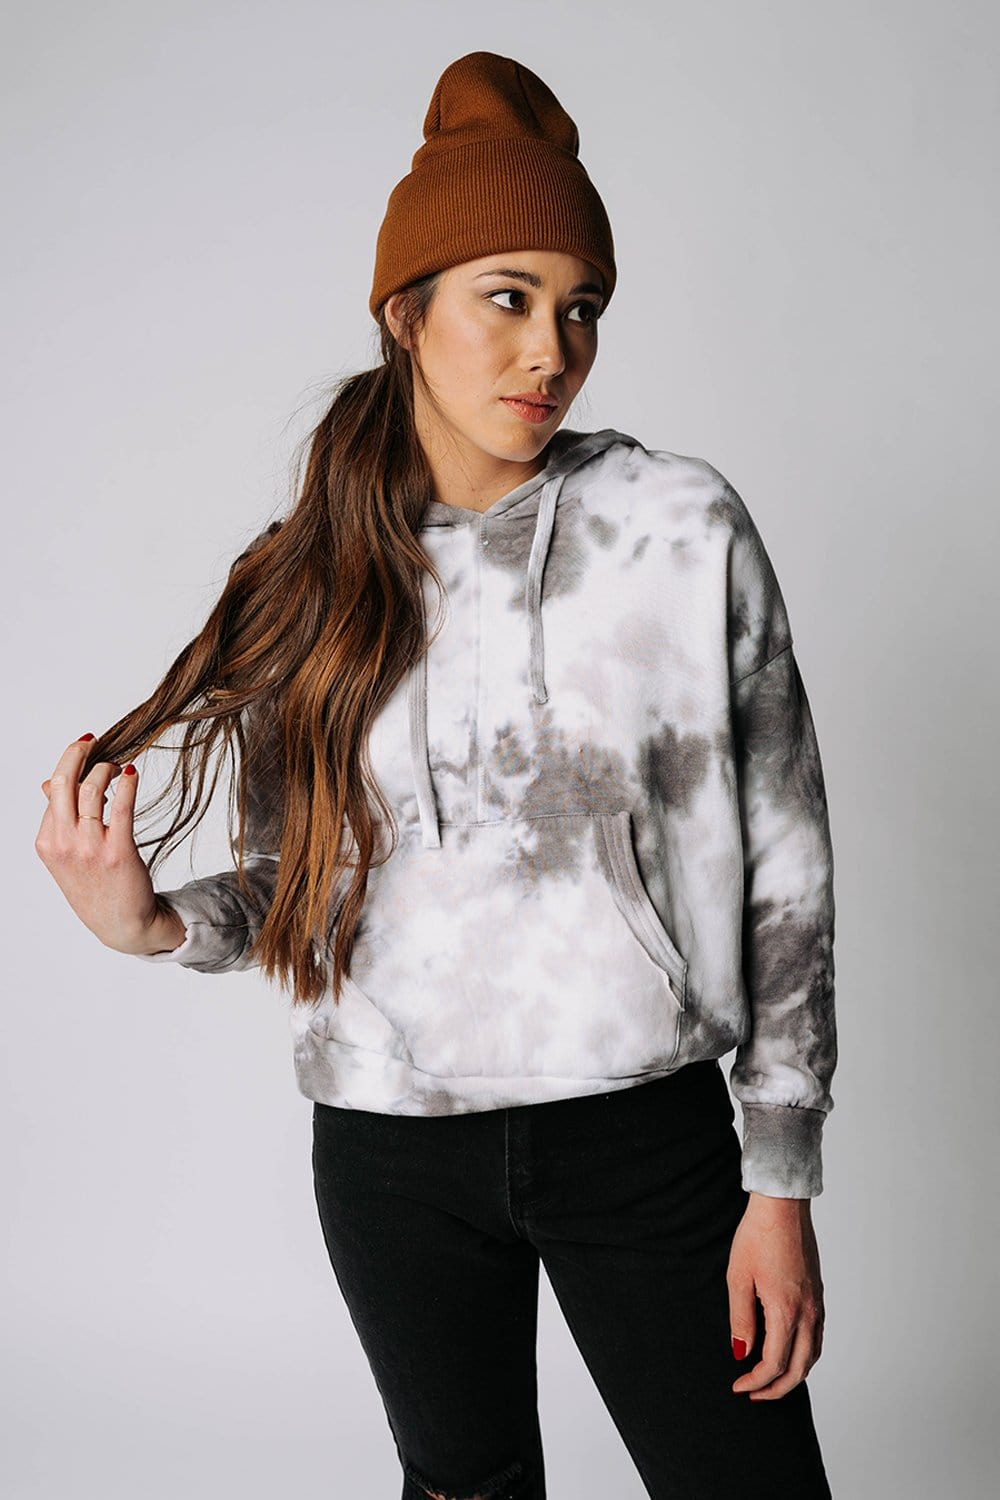 Clad and Cloth, Free People Tie Dye Work It Out Hoodie in Black Tie Dye, Free People, Top.